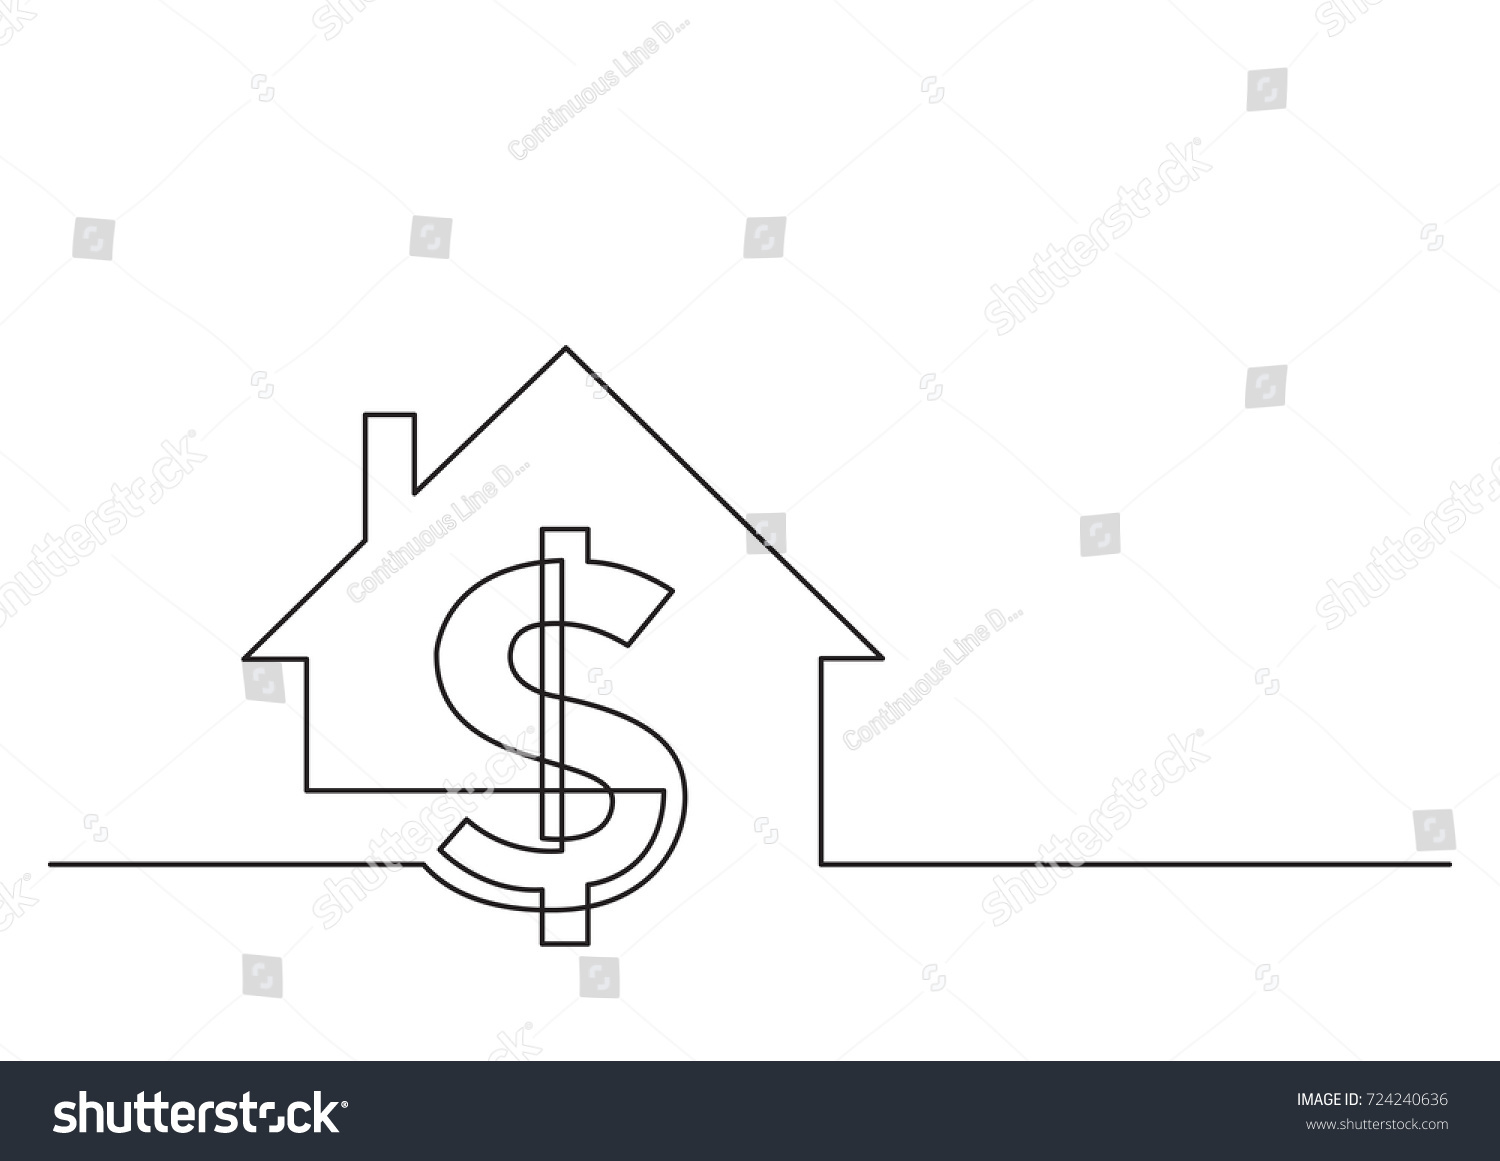 hight resolution of one line drawing of isolated vector object dollar sign and house